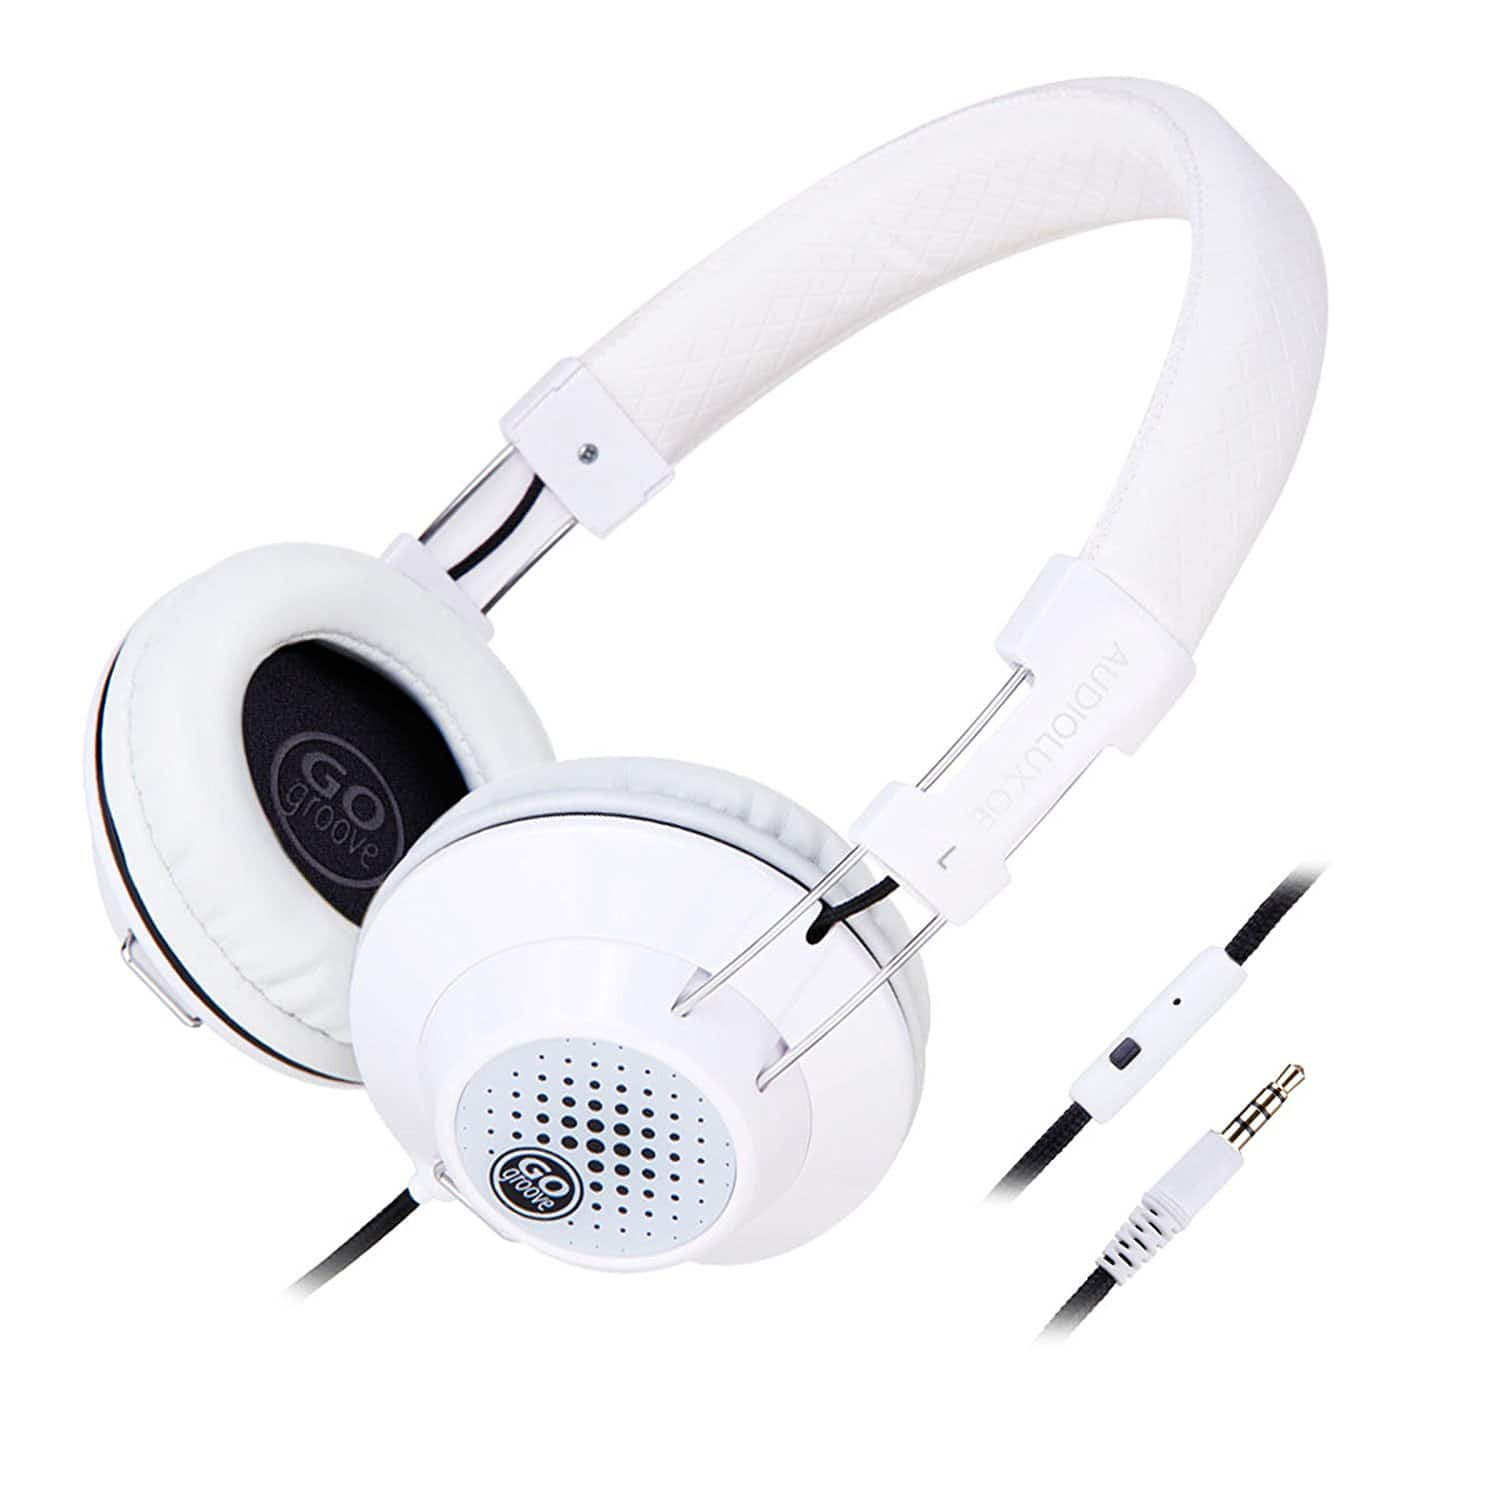 GOgroove AudioLUX OE Headphones for $10 + FS